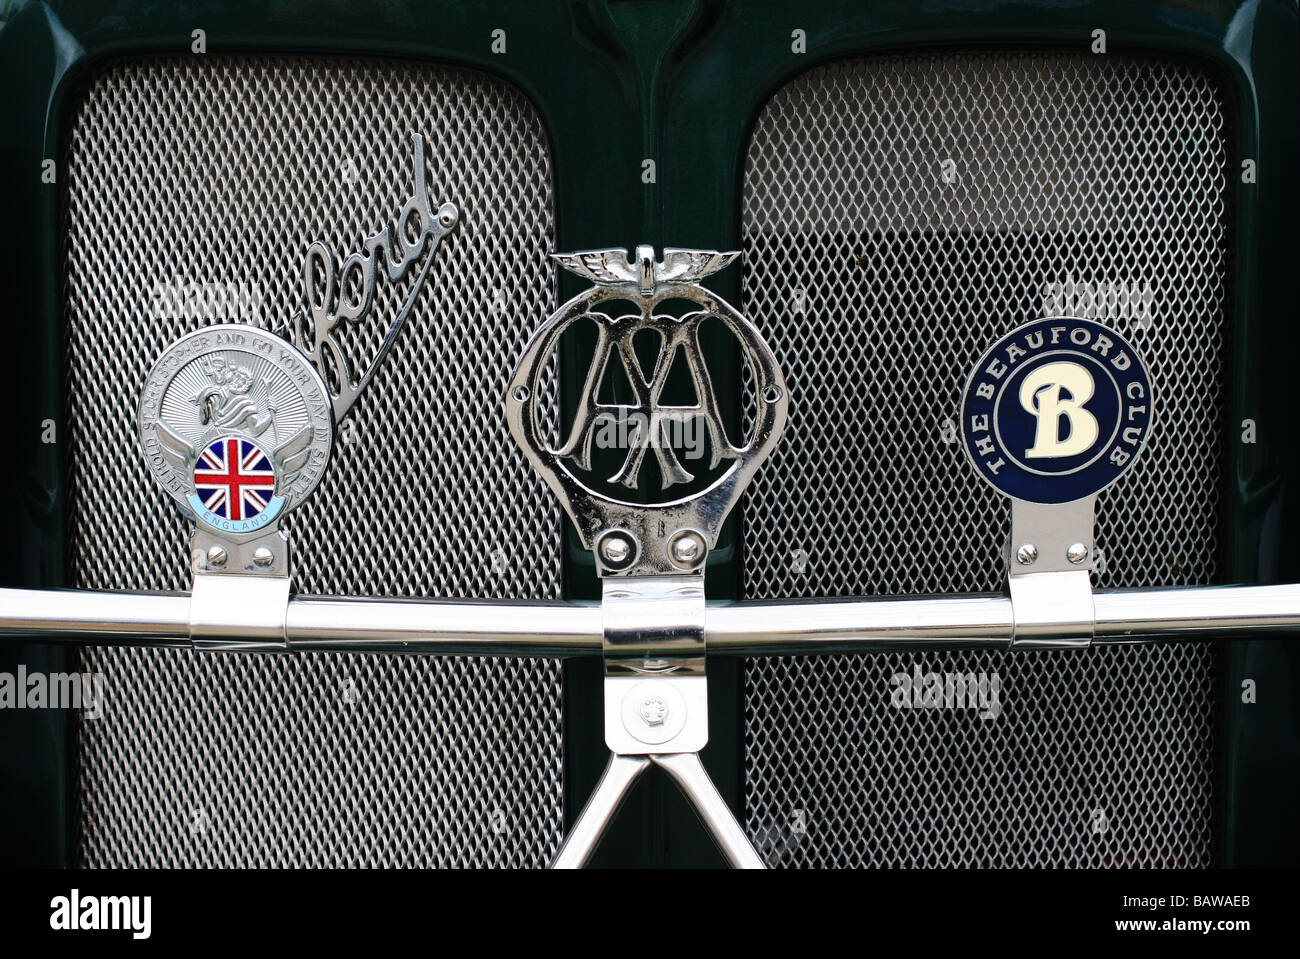 Classic British Beauford front grill with Beauford club badge and AA badge - Stock Image